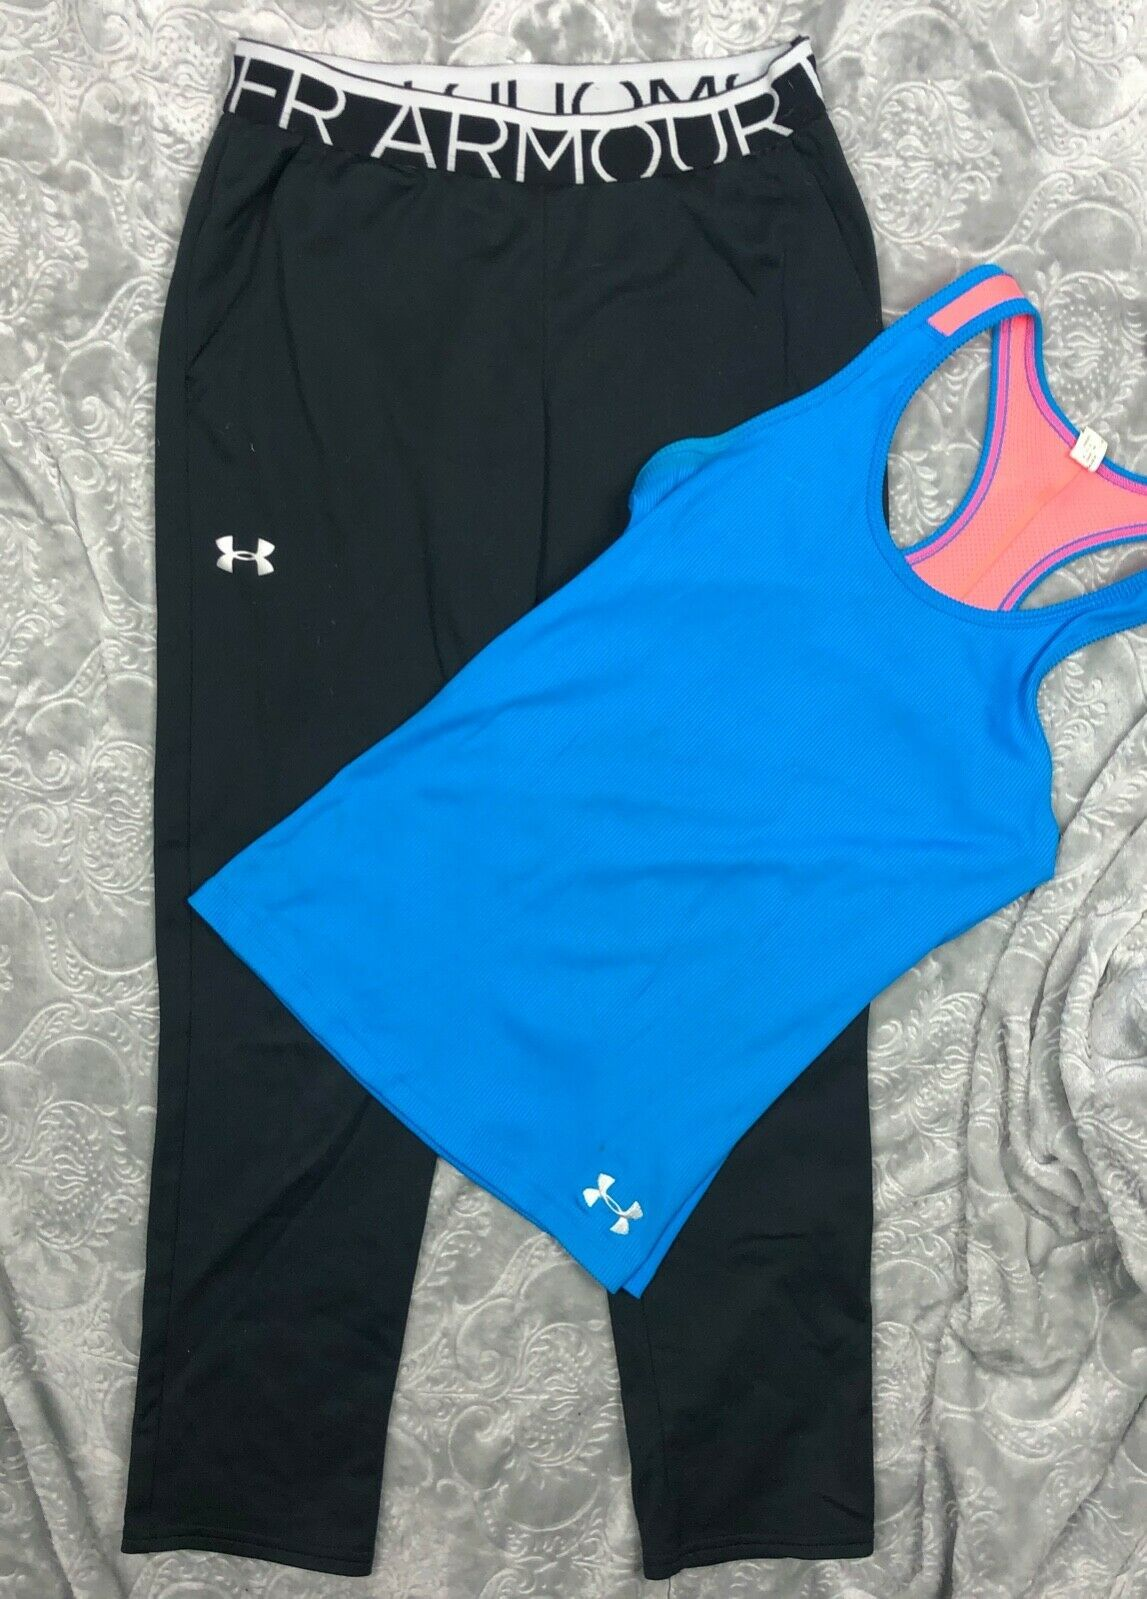 UNDER ARMOUR TANK TOP + BLACK PANTS OUTFIT LOT GIRL'S YMD